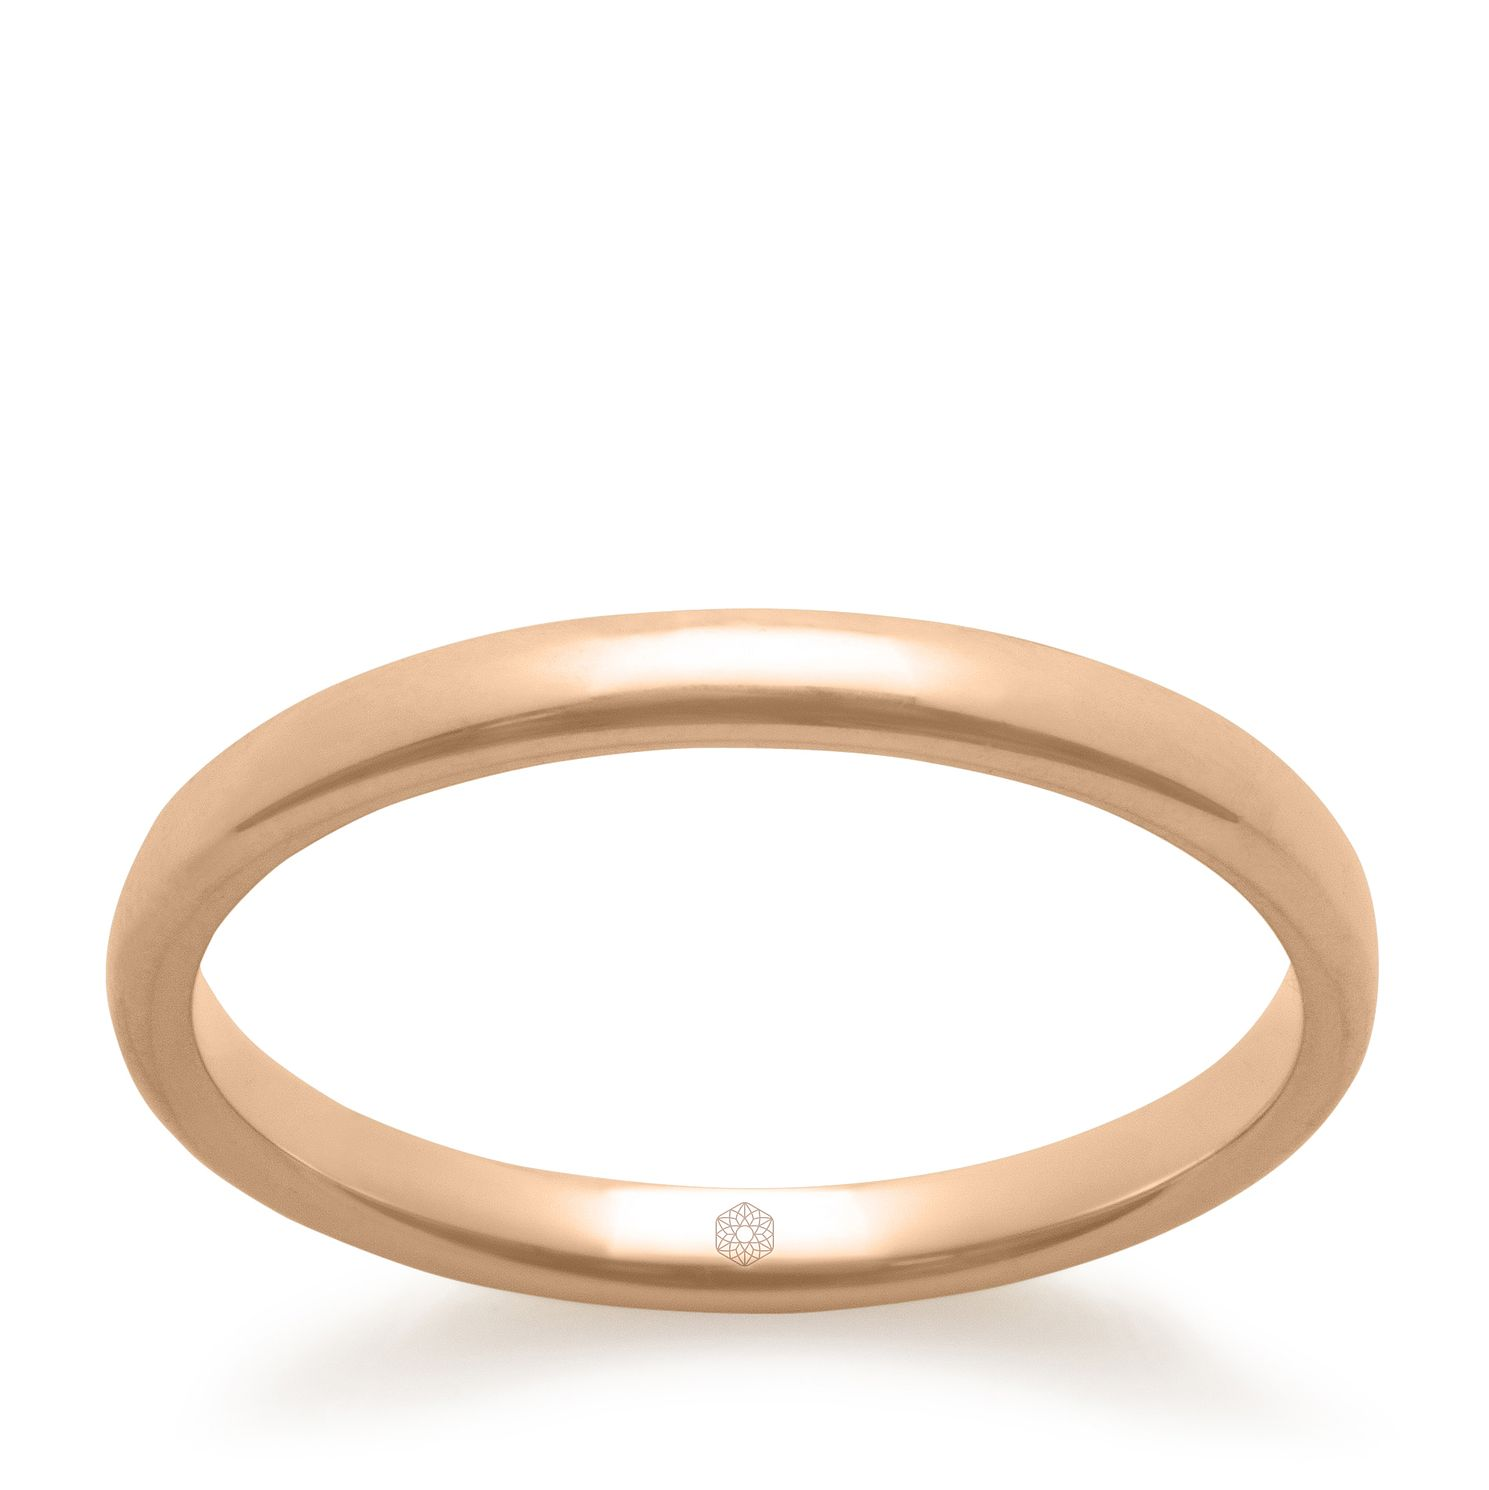 Baird Mint 18ct Rose Gold Blush 2mm Court Ring - Product number 3090388